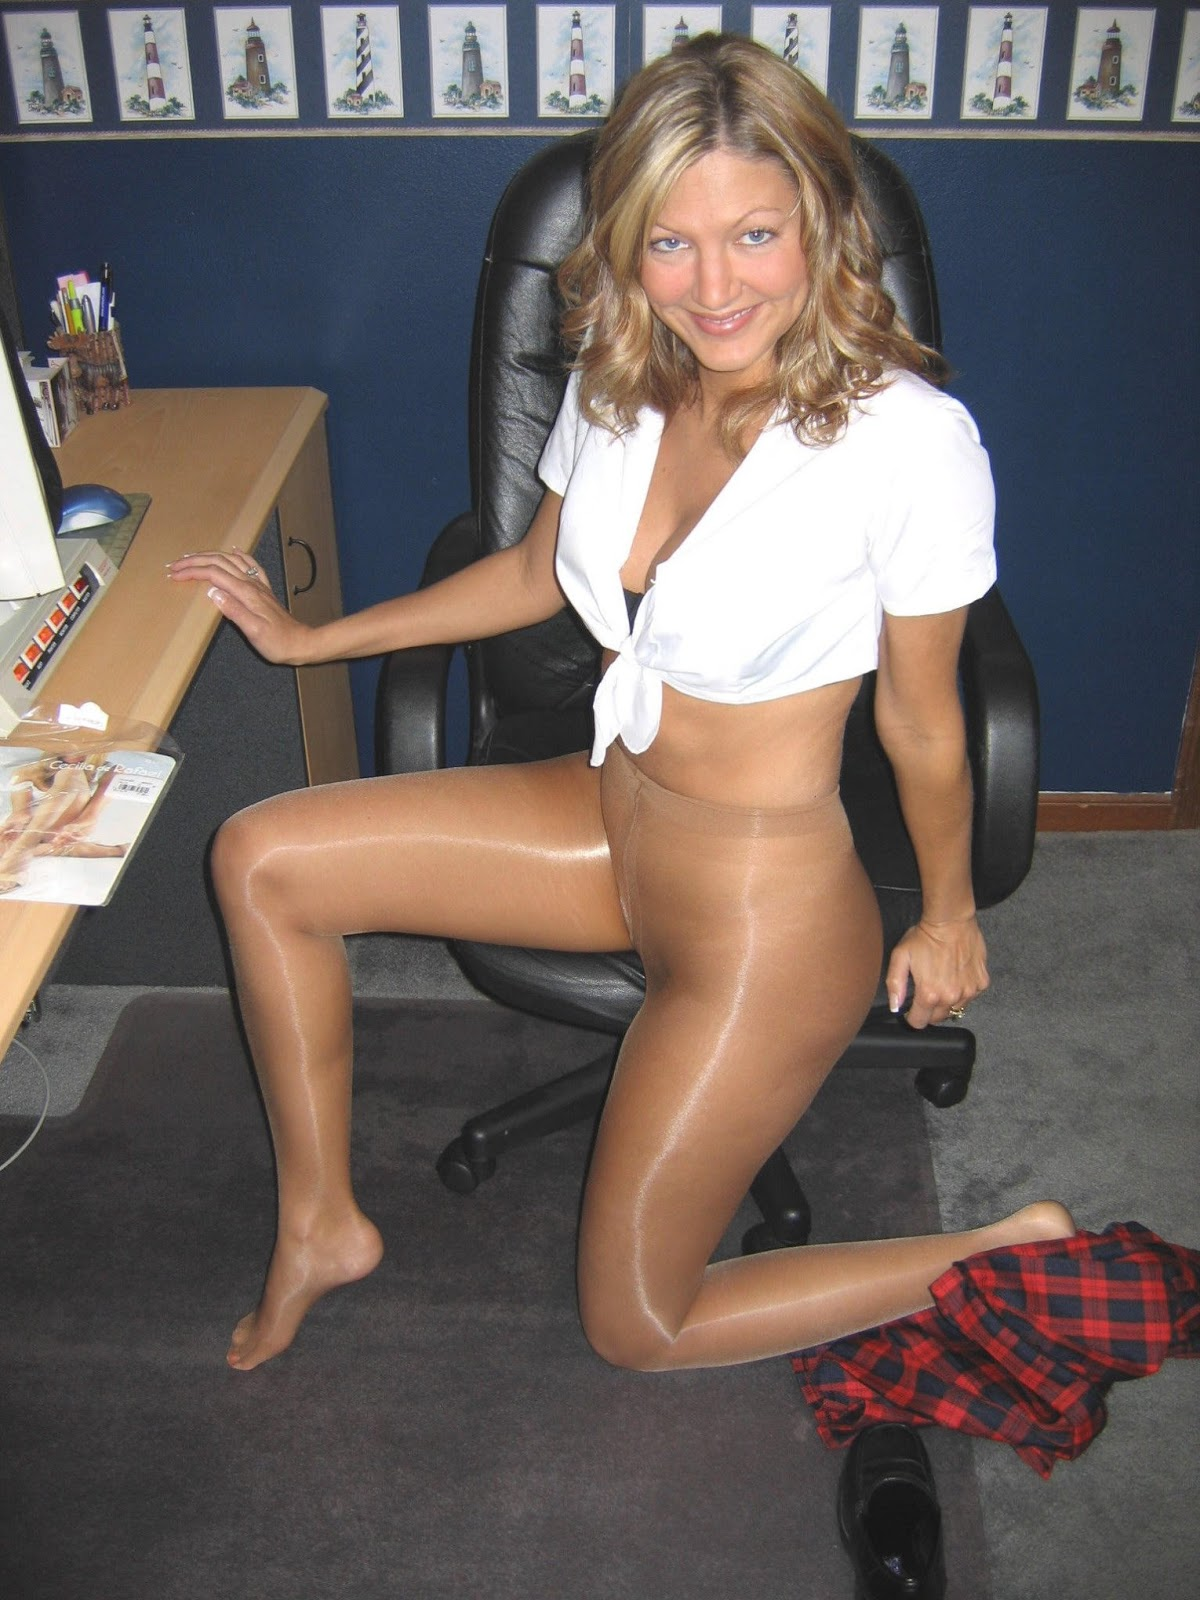 Amateur girls in nylons #7